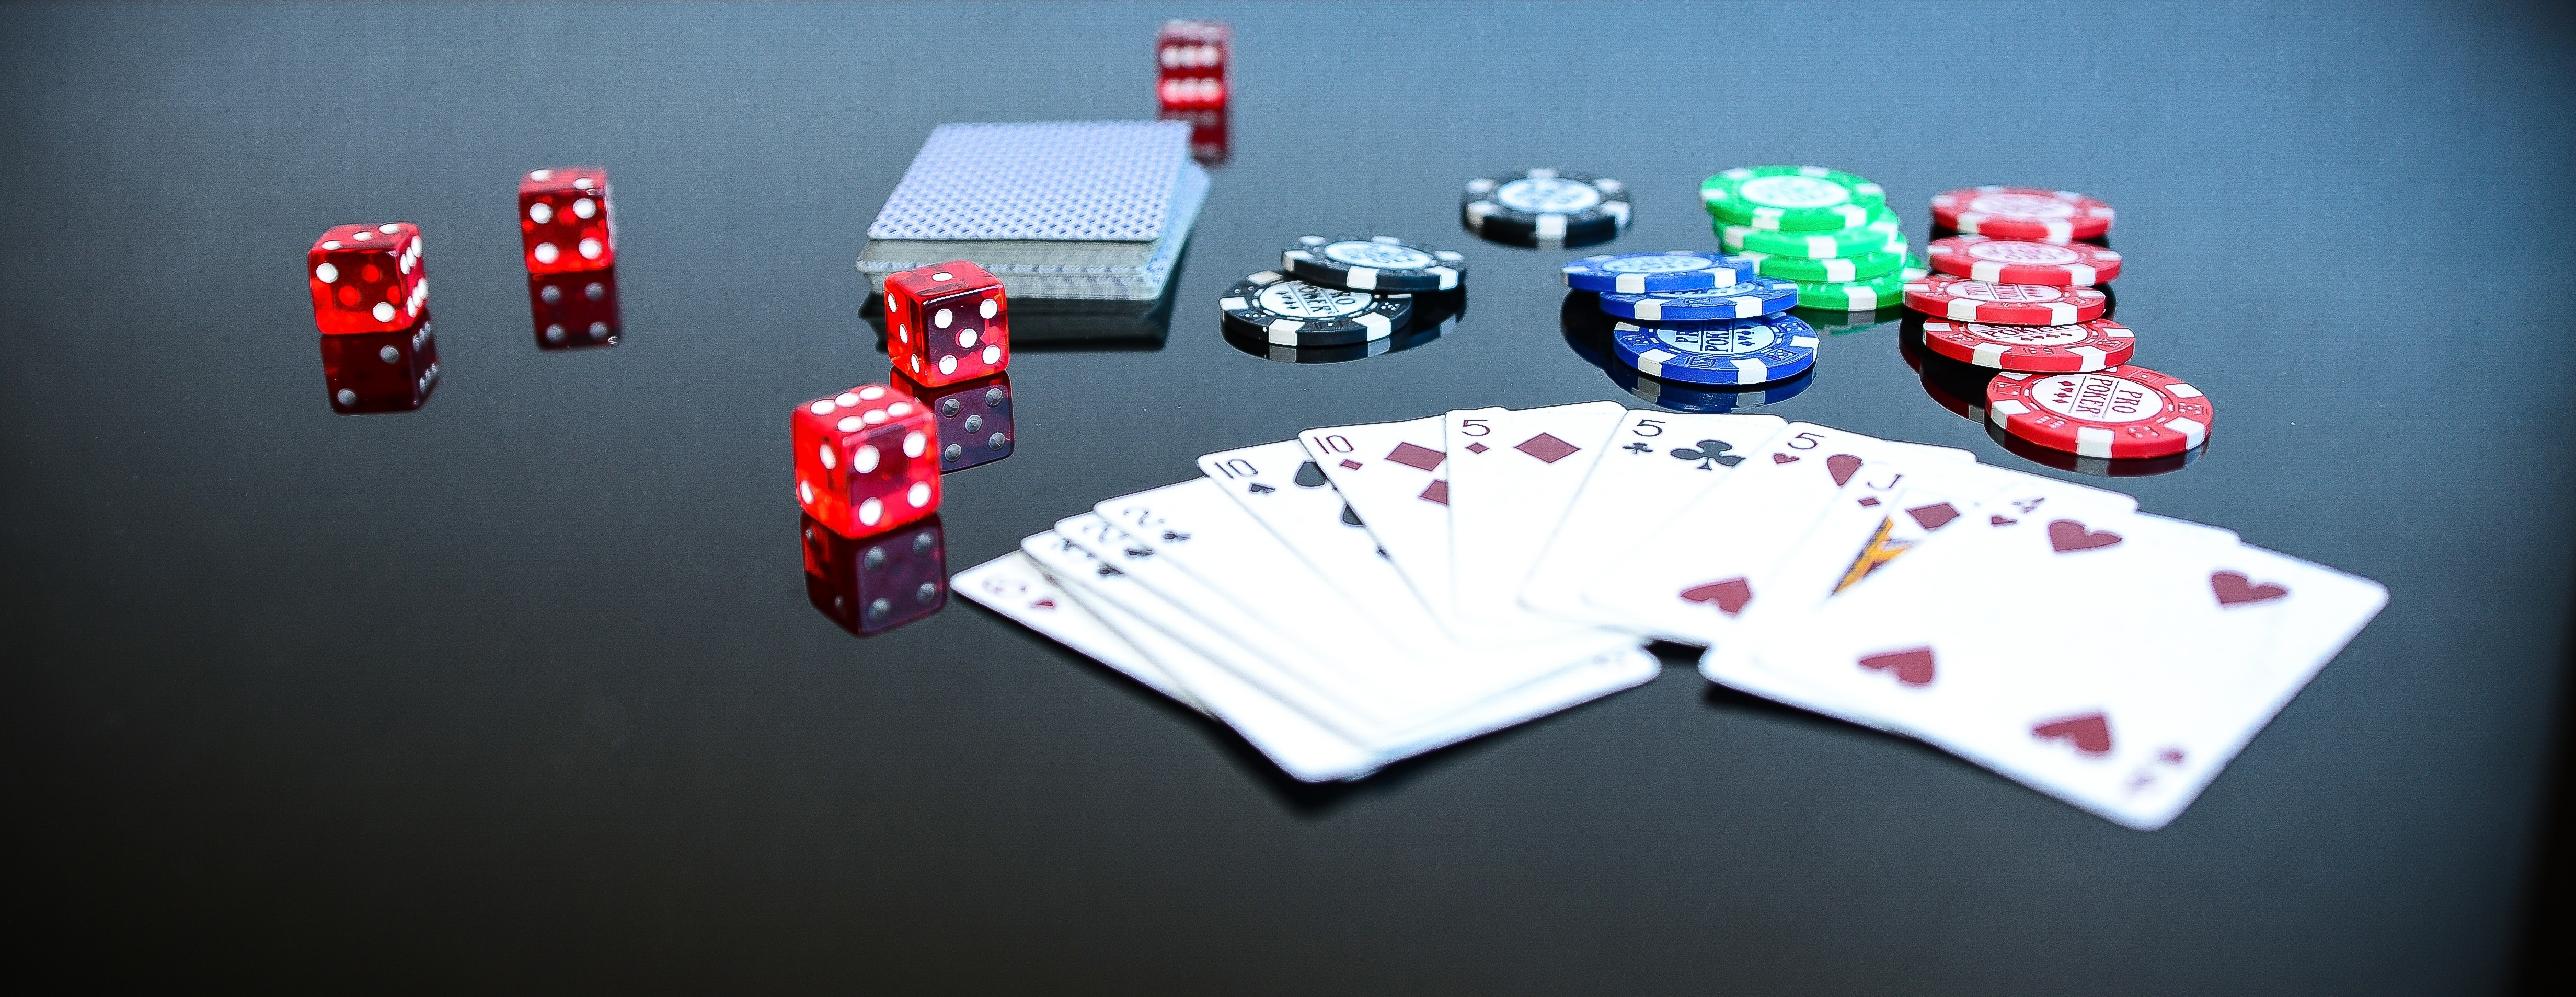 Playing Cards Beside Poker Chips And Dice Free Stock Photo